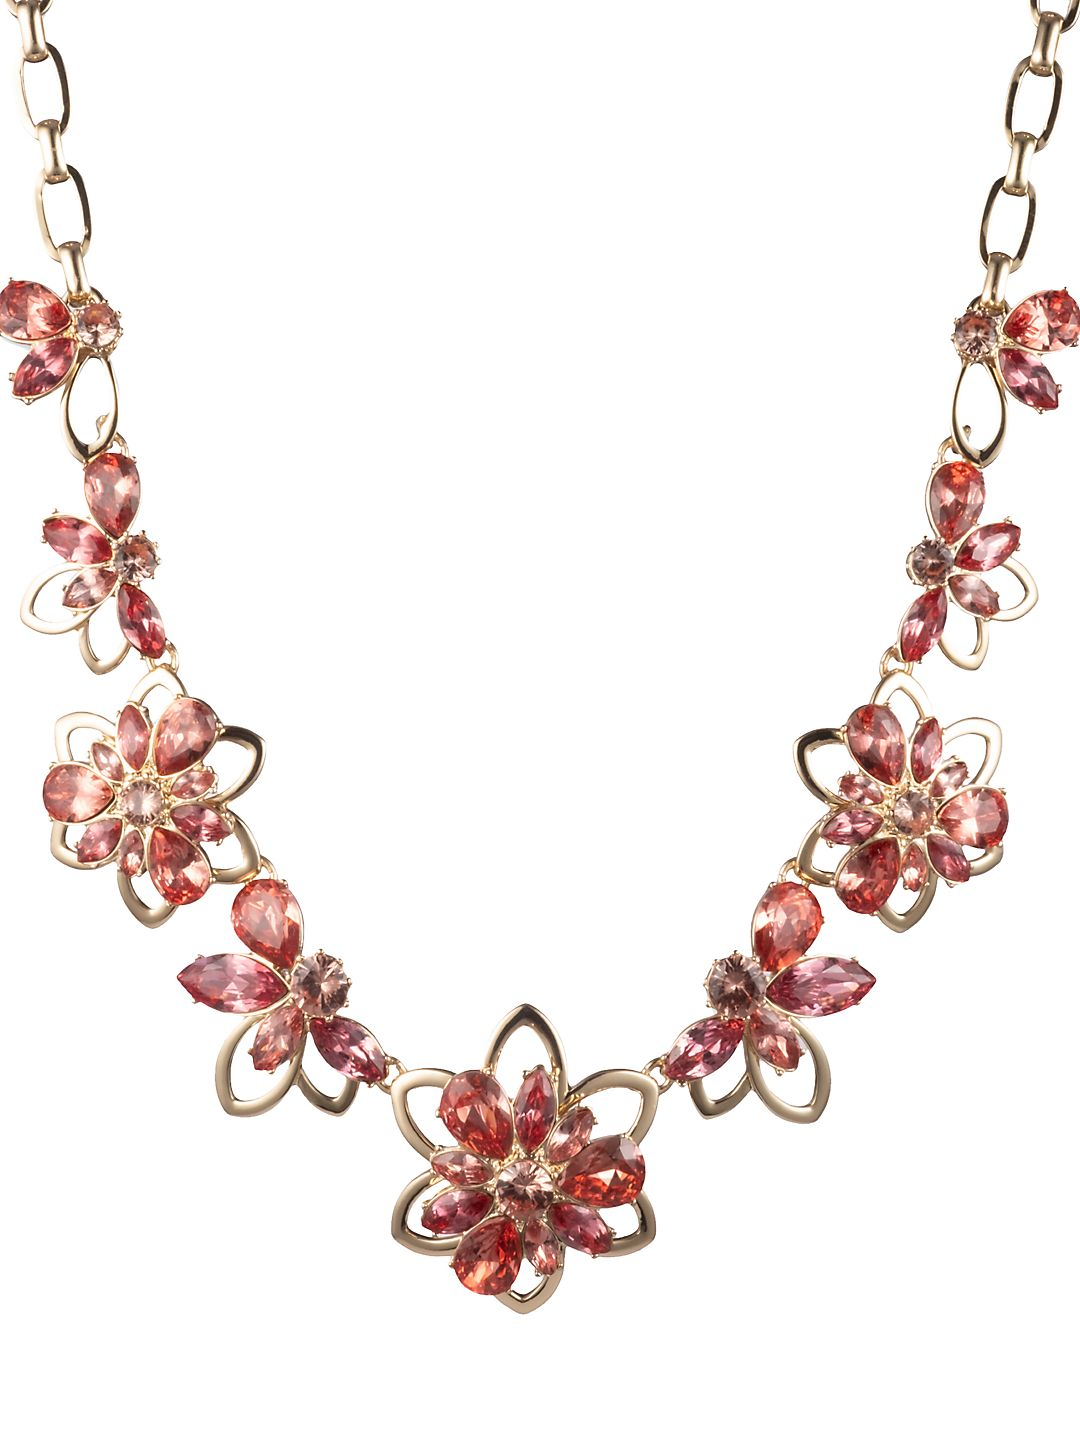 Goldtone and Cubic Zirconia Floral Frontal Necklace